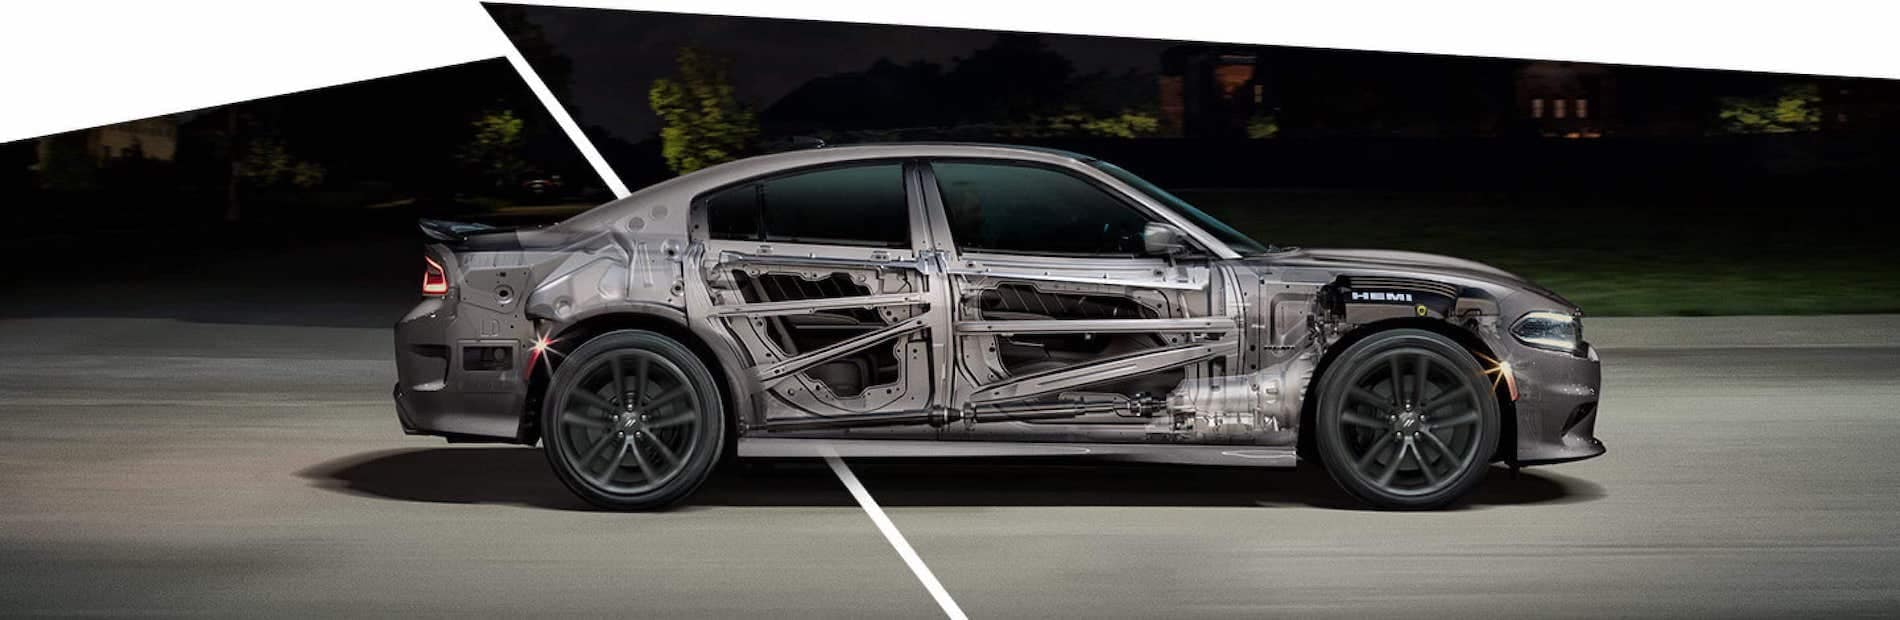 Safety Features 2021 Dodge Charger